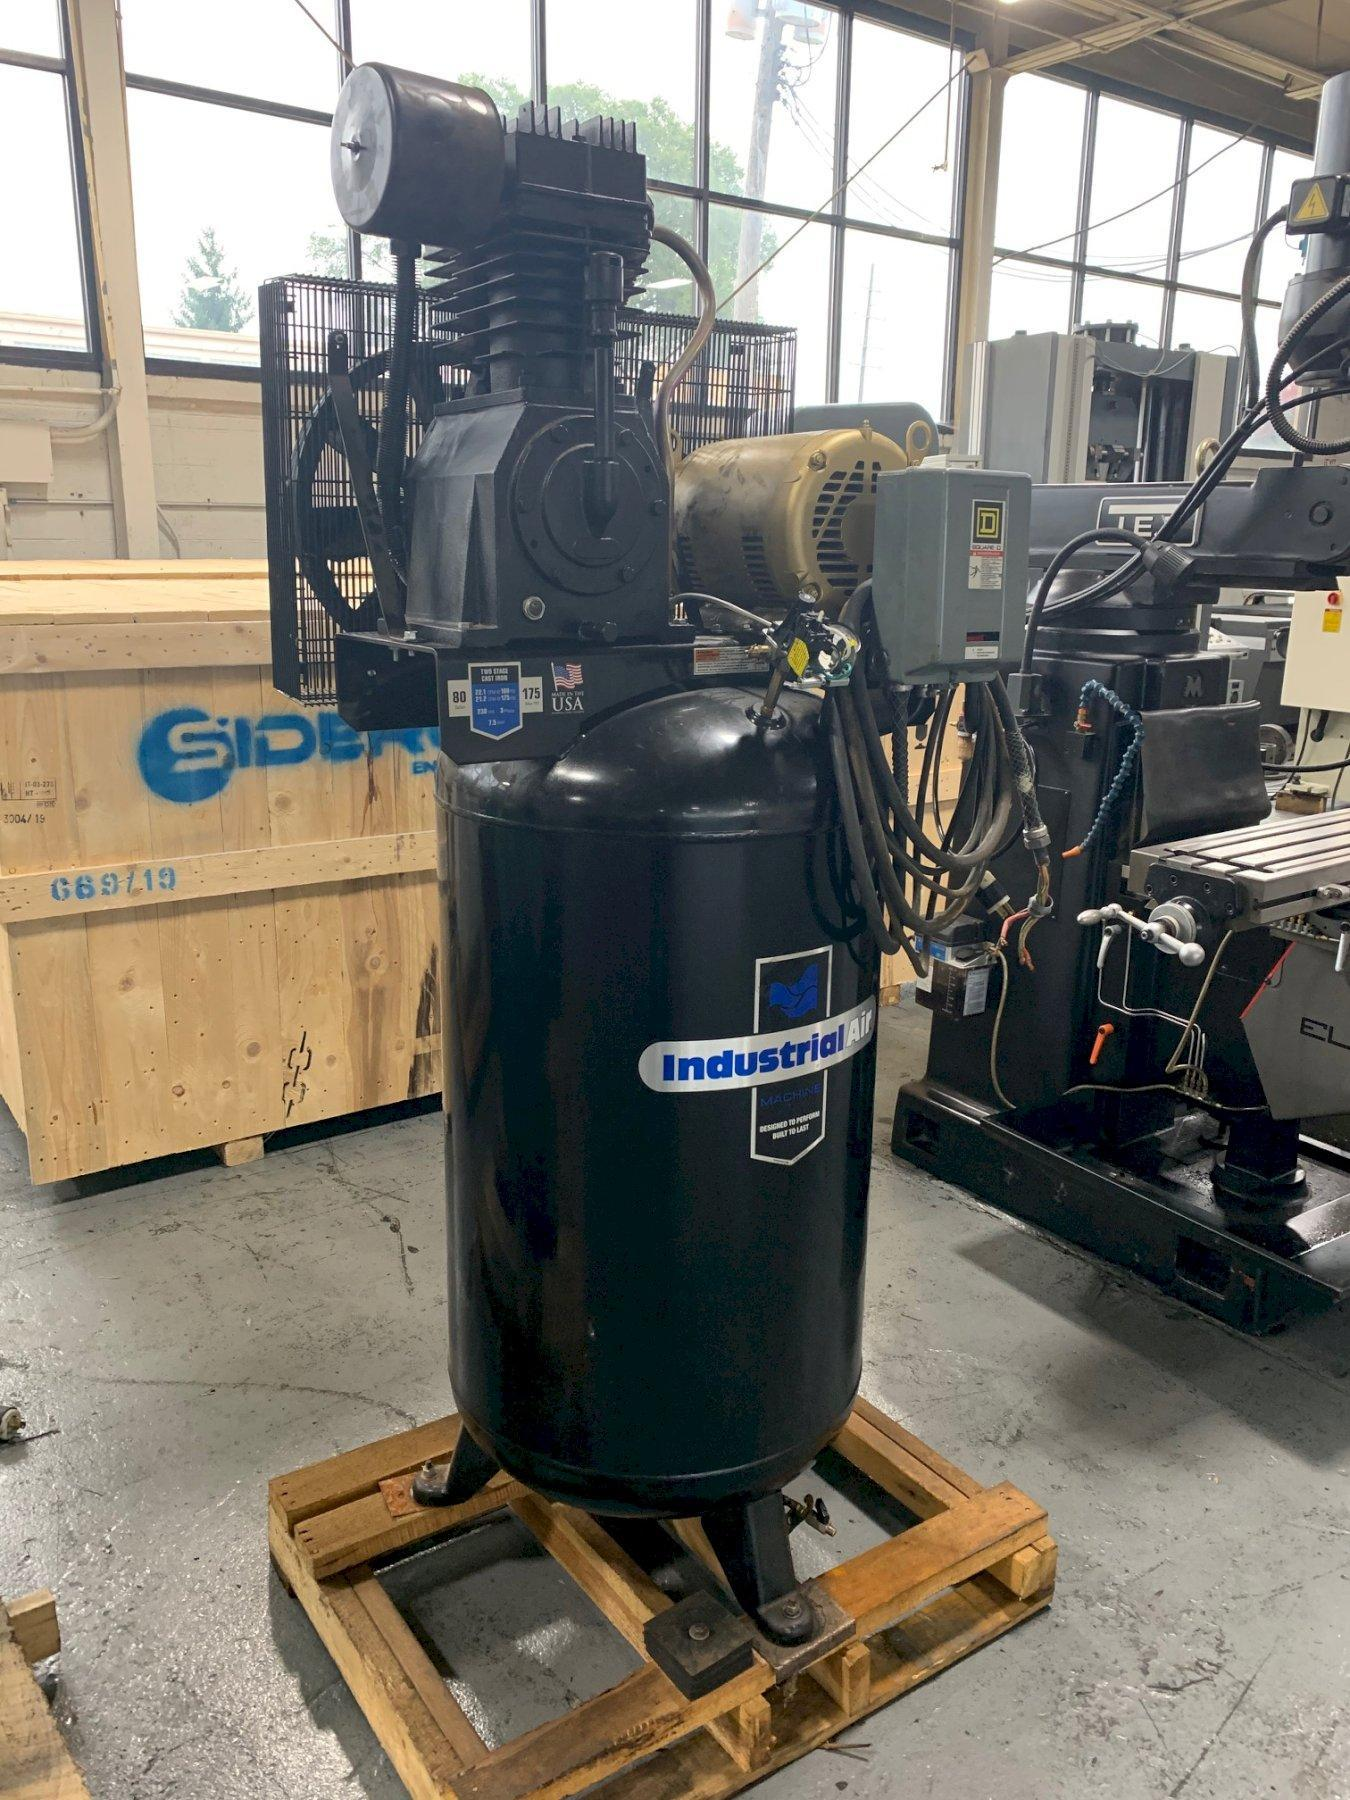 USED INDUSTRIAL AIR TANK MOUNTED AIR COMPRESSOR, MODEL IV7538015, YEAR 2016, STOCK# 10647